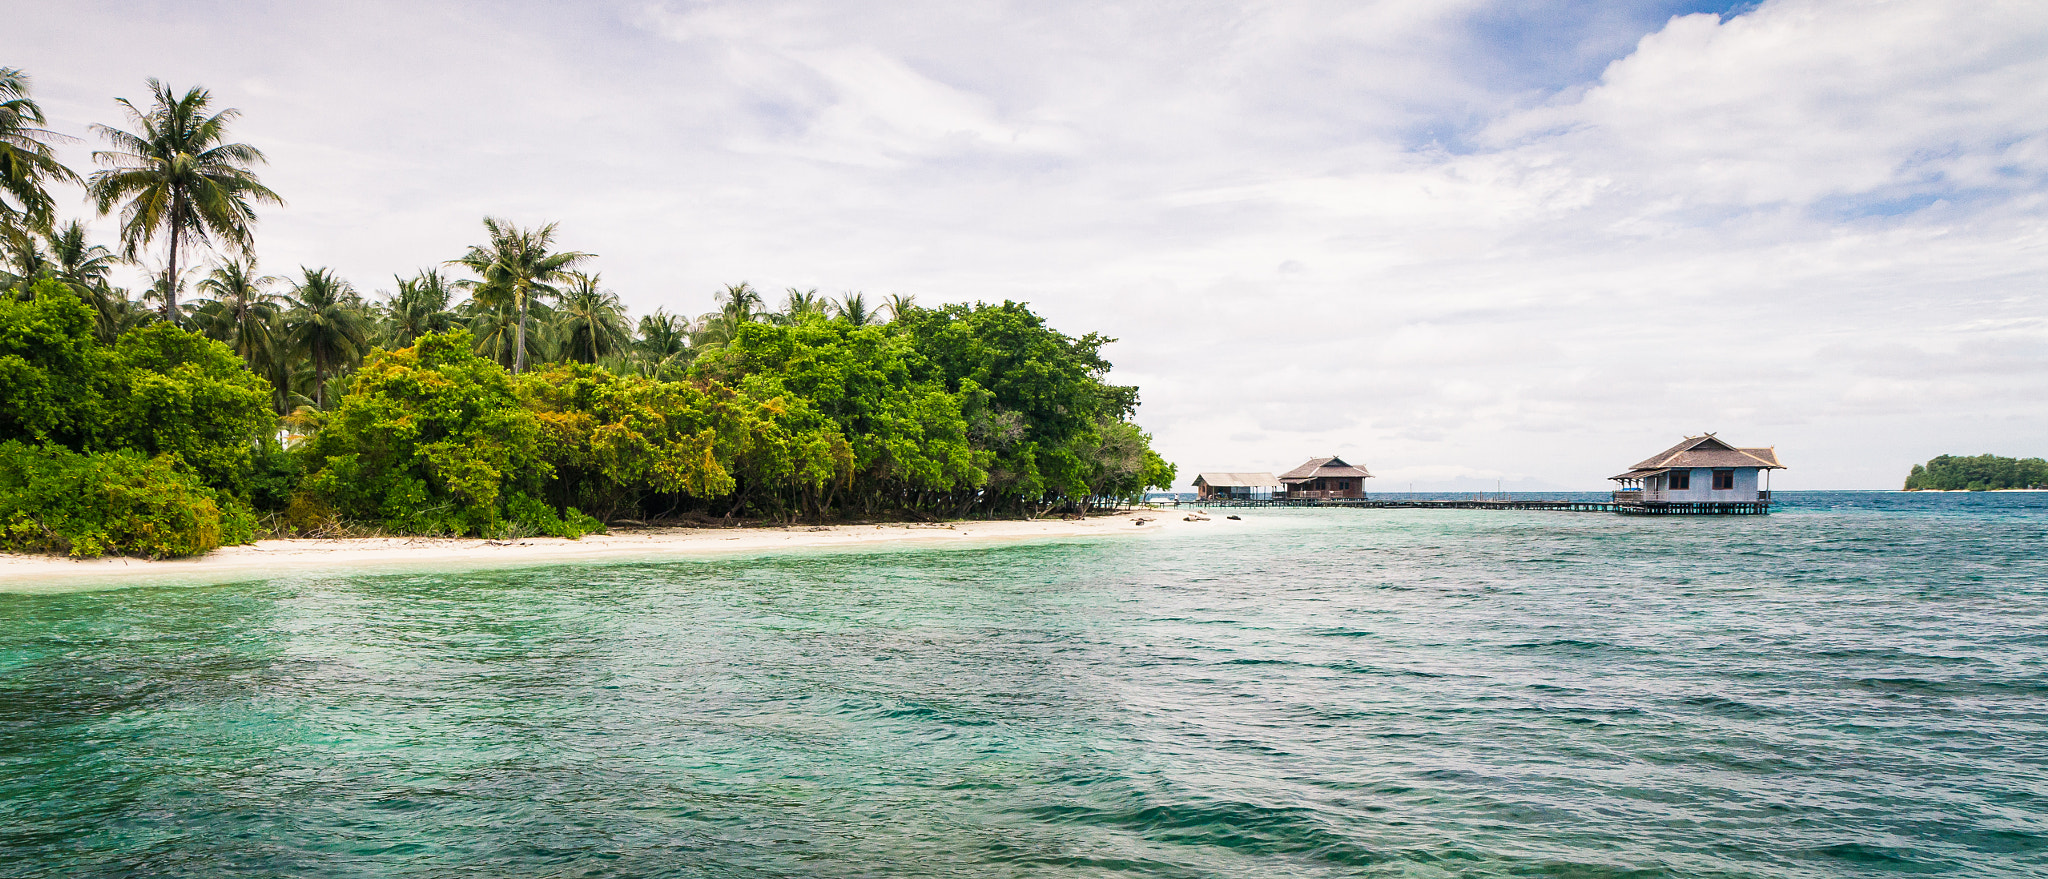 Photograph Pulau Tengah by Free Mindflow on 500px